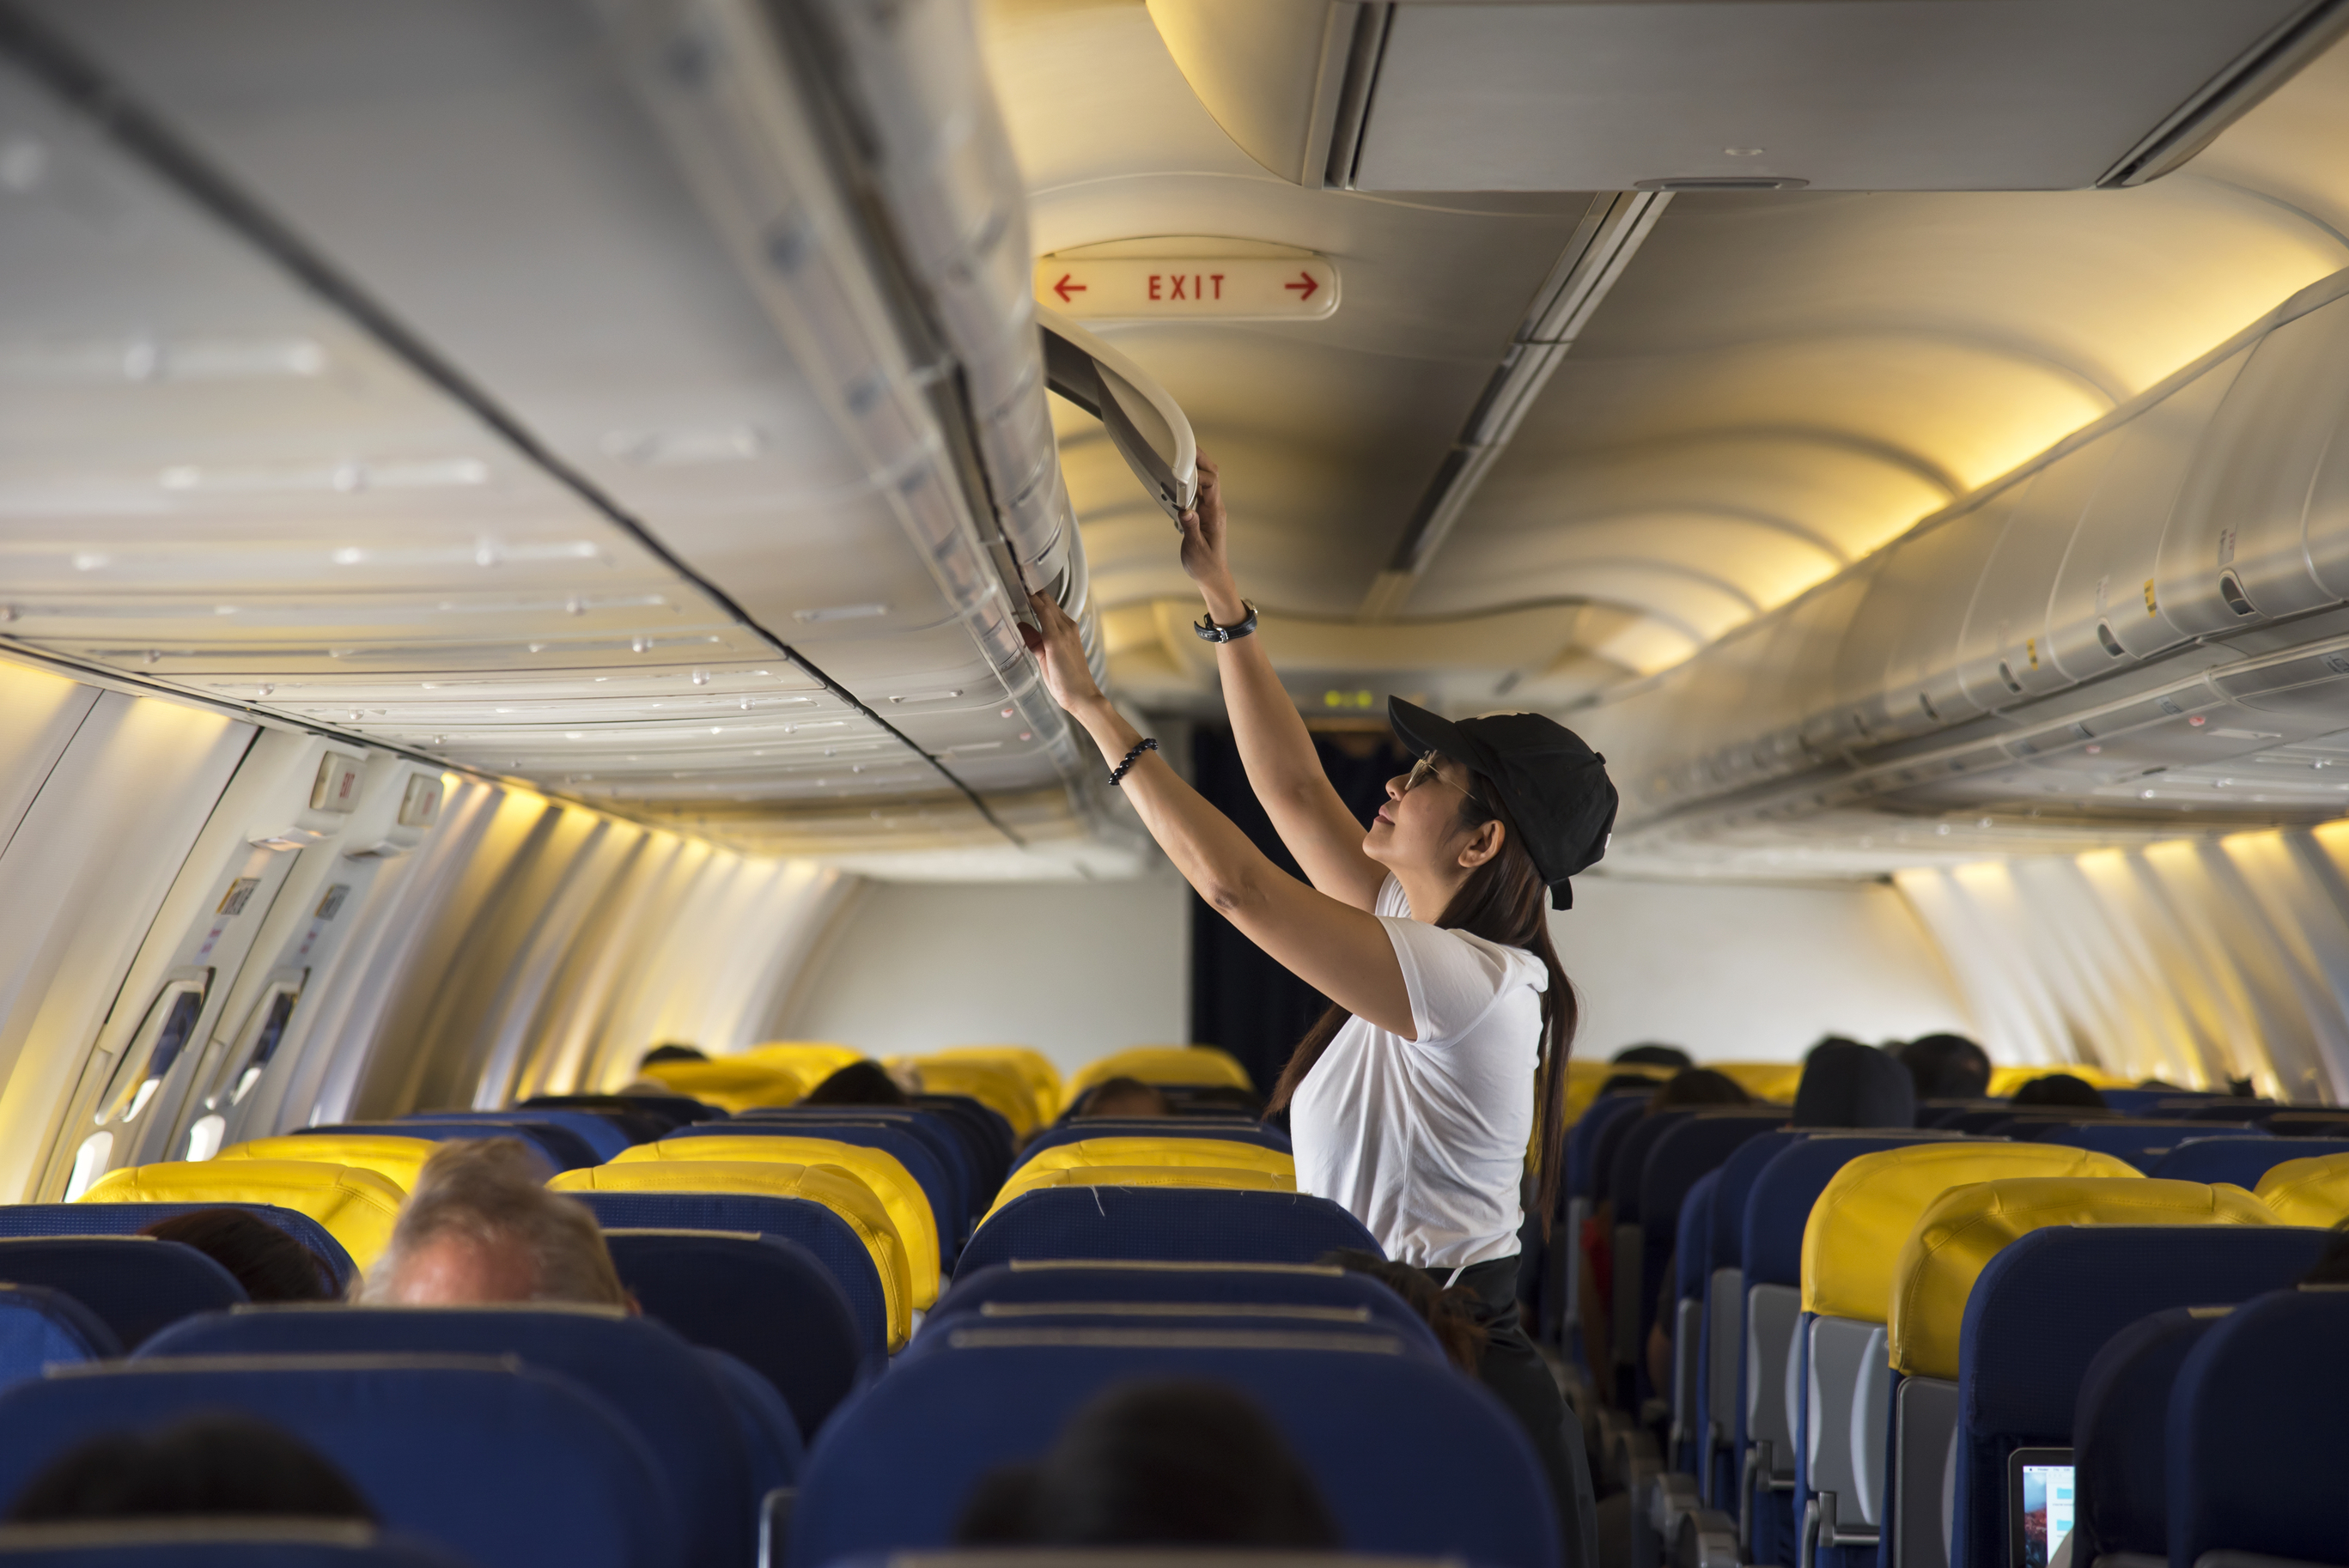 woman-carryon-airplane.jpg?mtime=20180710130747#asset:102449